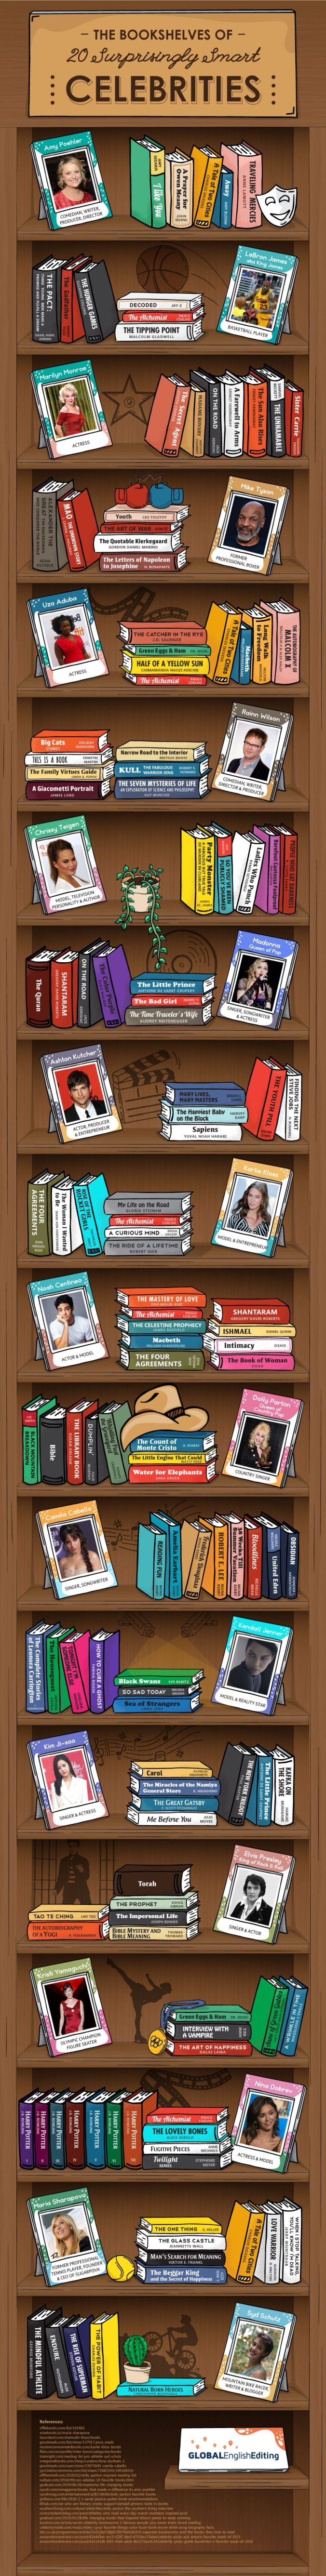 Smart celebrities and their favorite books - full infographic